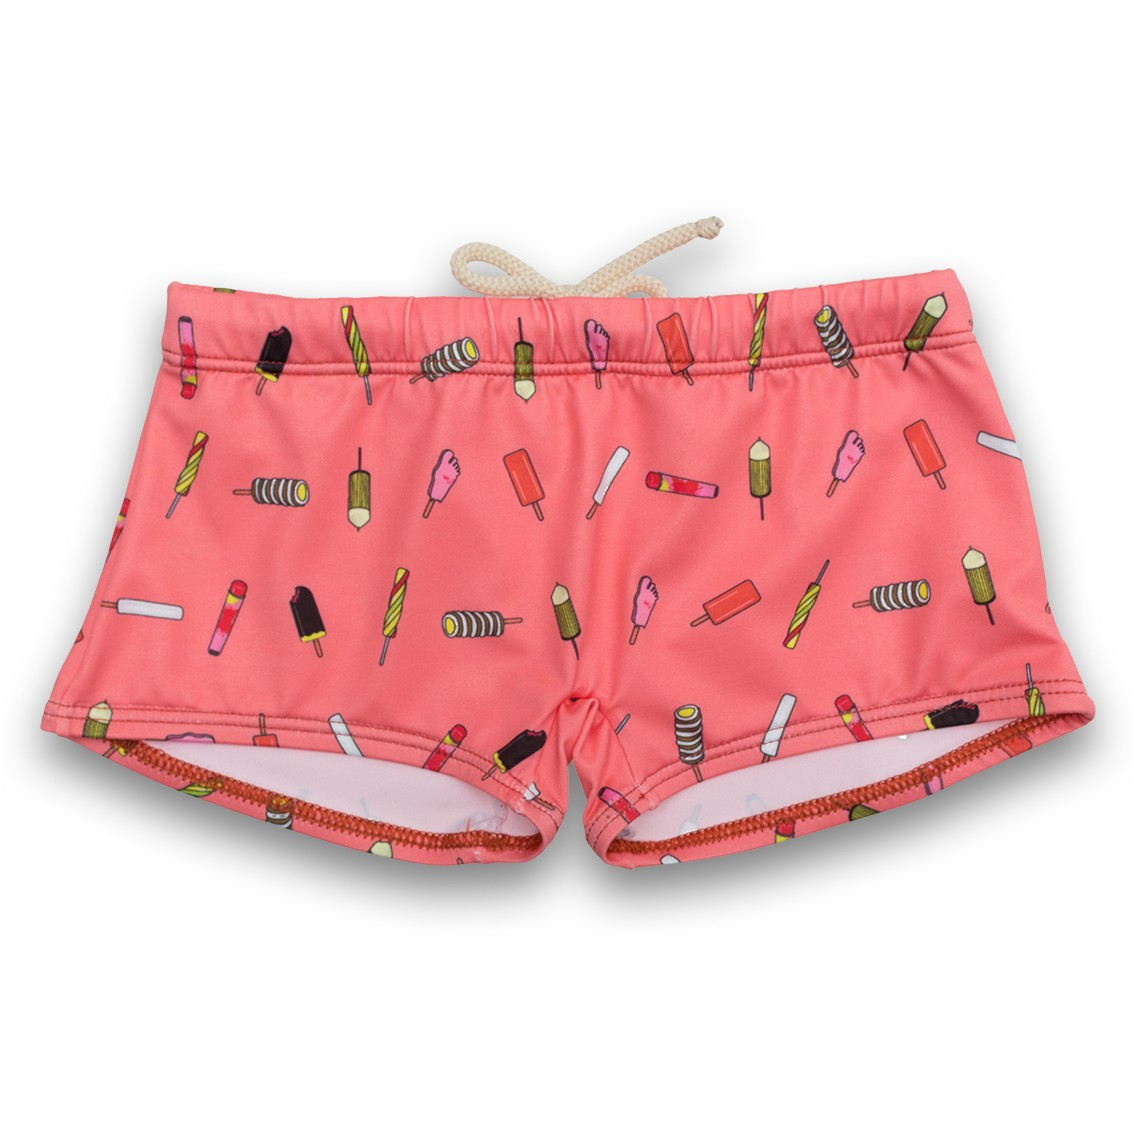 ae8d66668d Boy Swim Short Pink Ice Creams 1 year - Ocoly